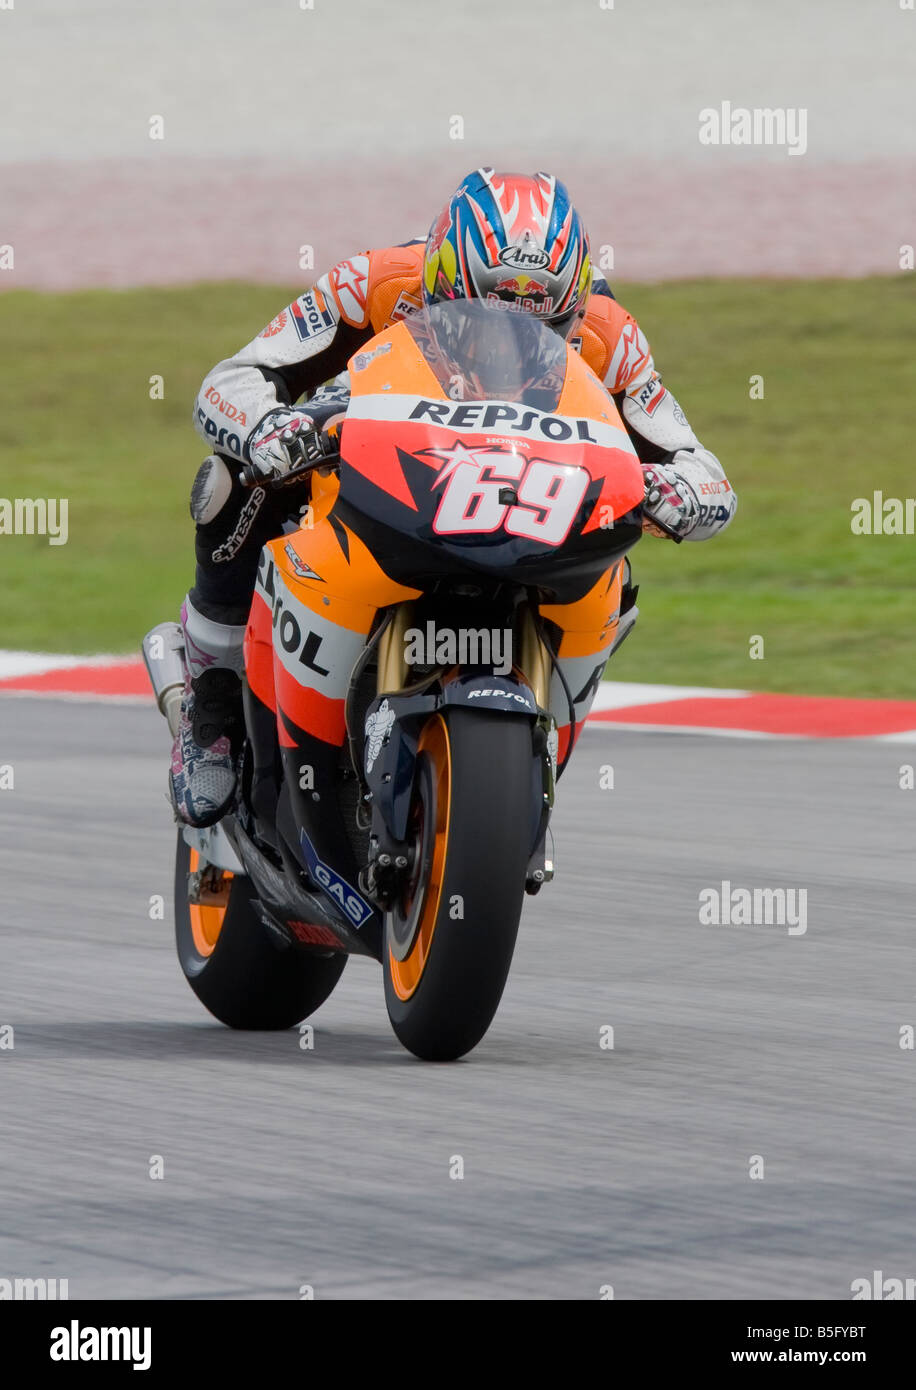 Nicky Hayden 69 Stock Photos & Nicky Hayden 69 Stock Images - Alamy